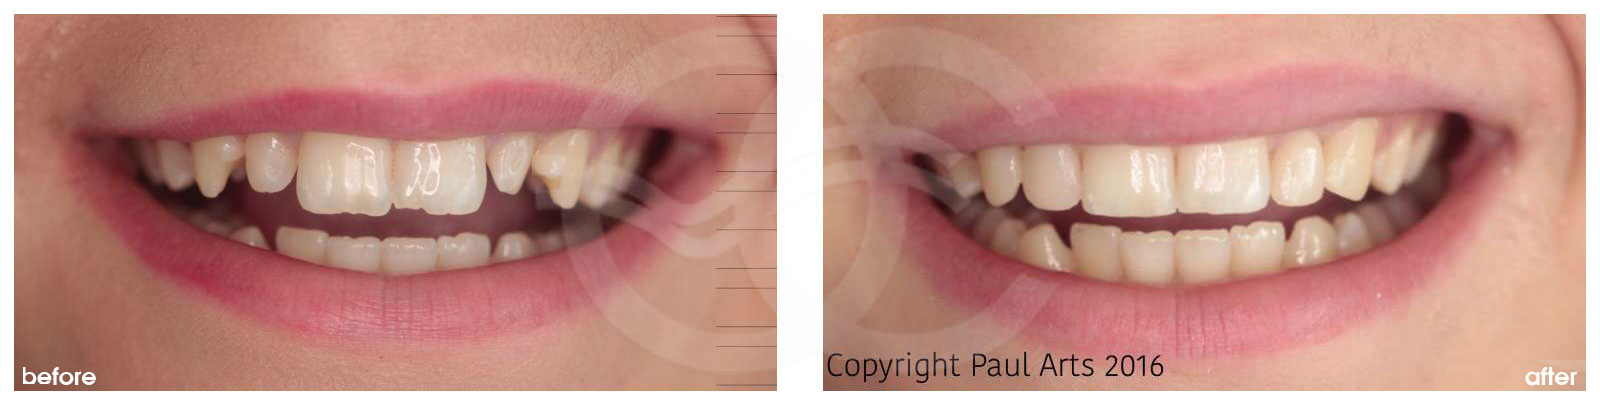 Cosmetic Dentistry Before After Bonding Composite. Photo frontal Ocean Clinic Marbella Spain